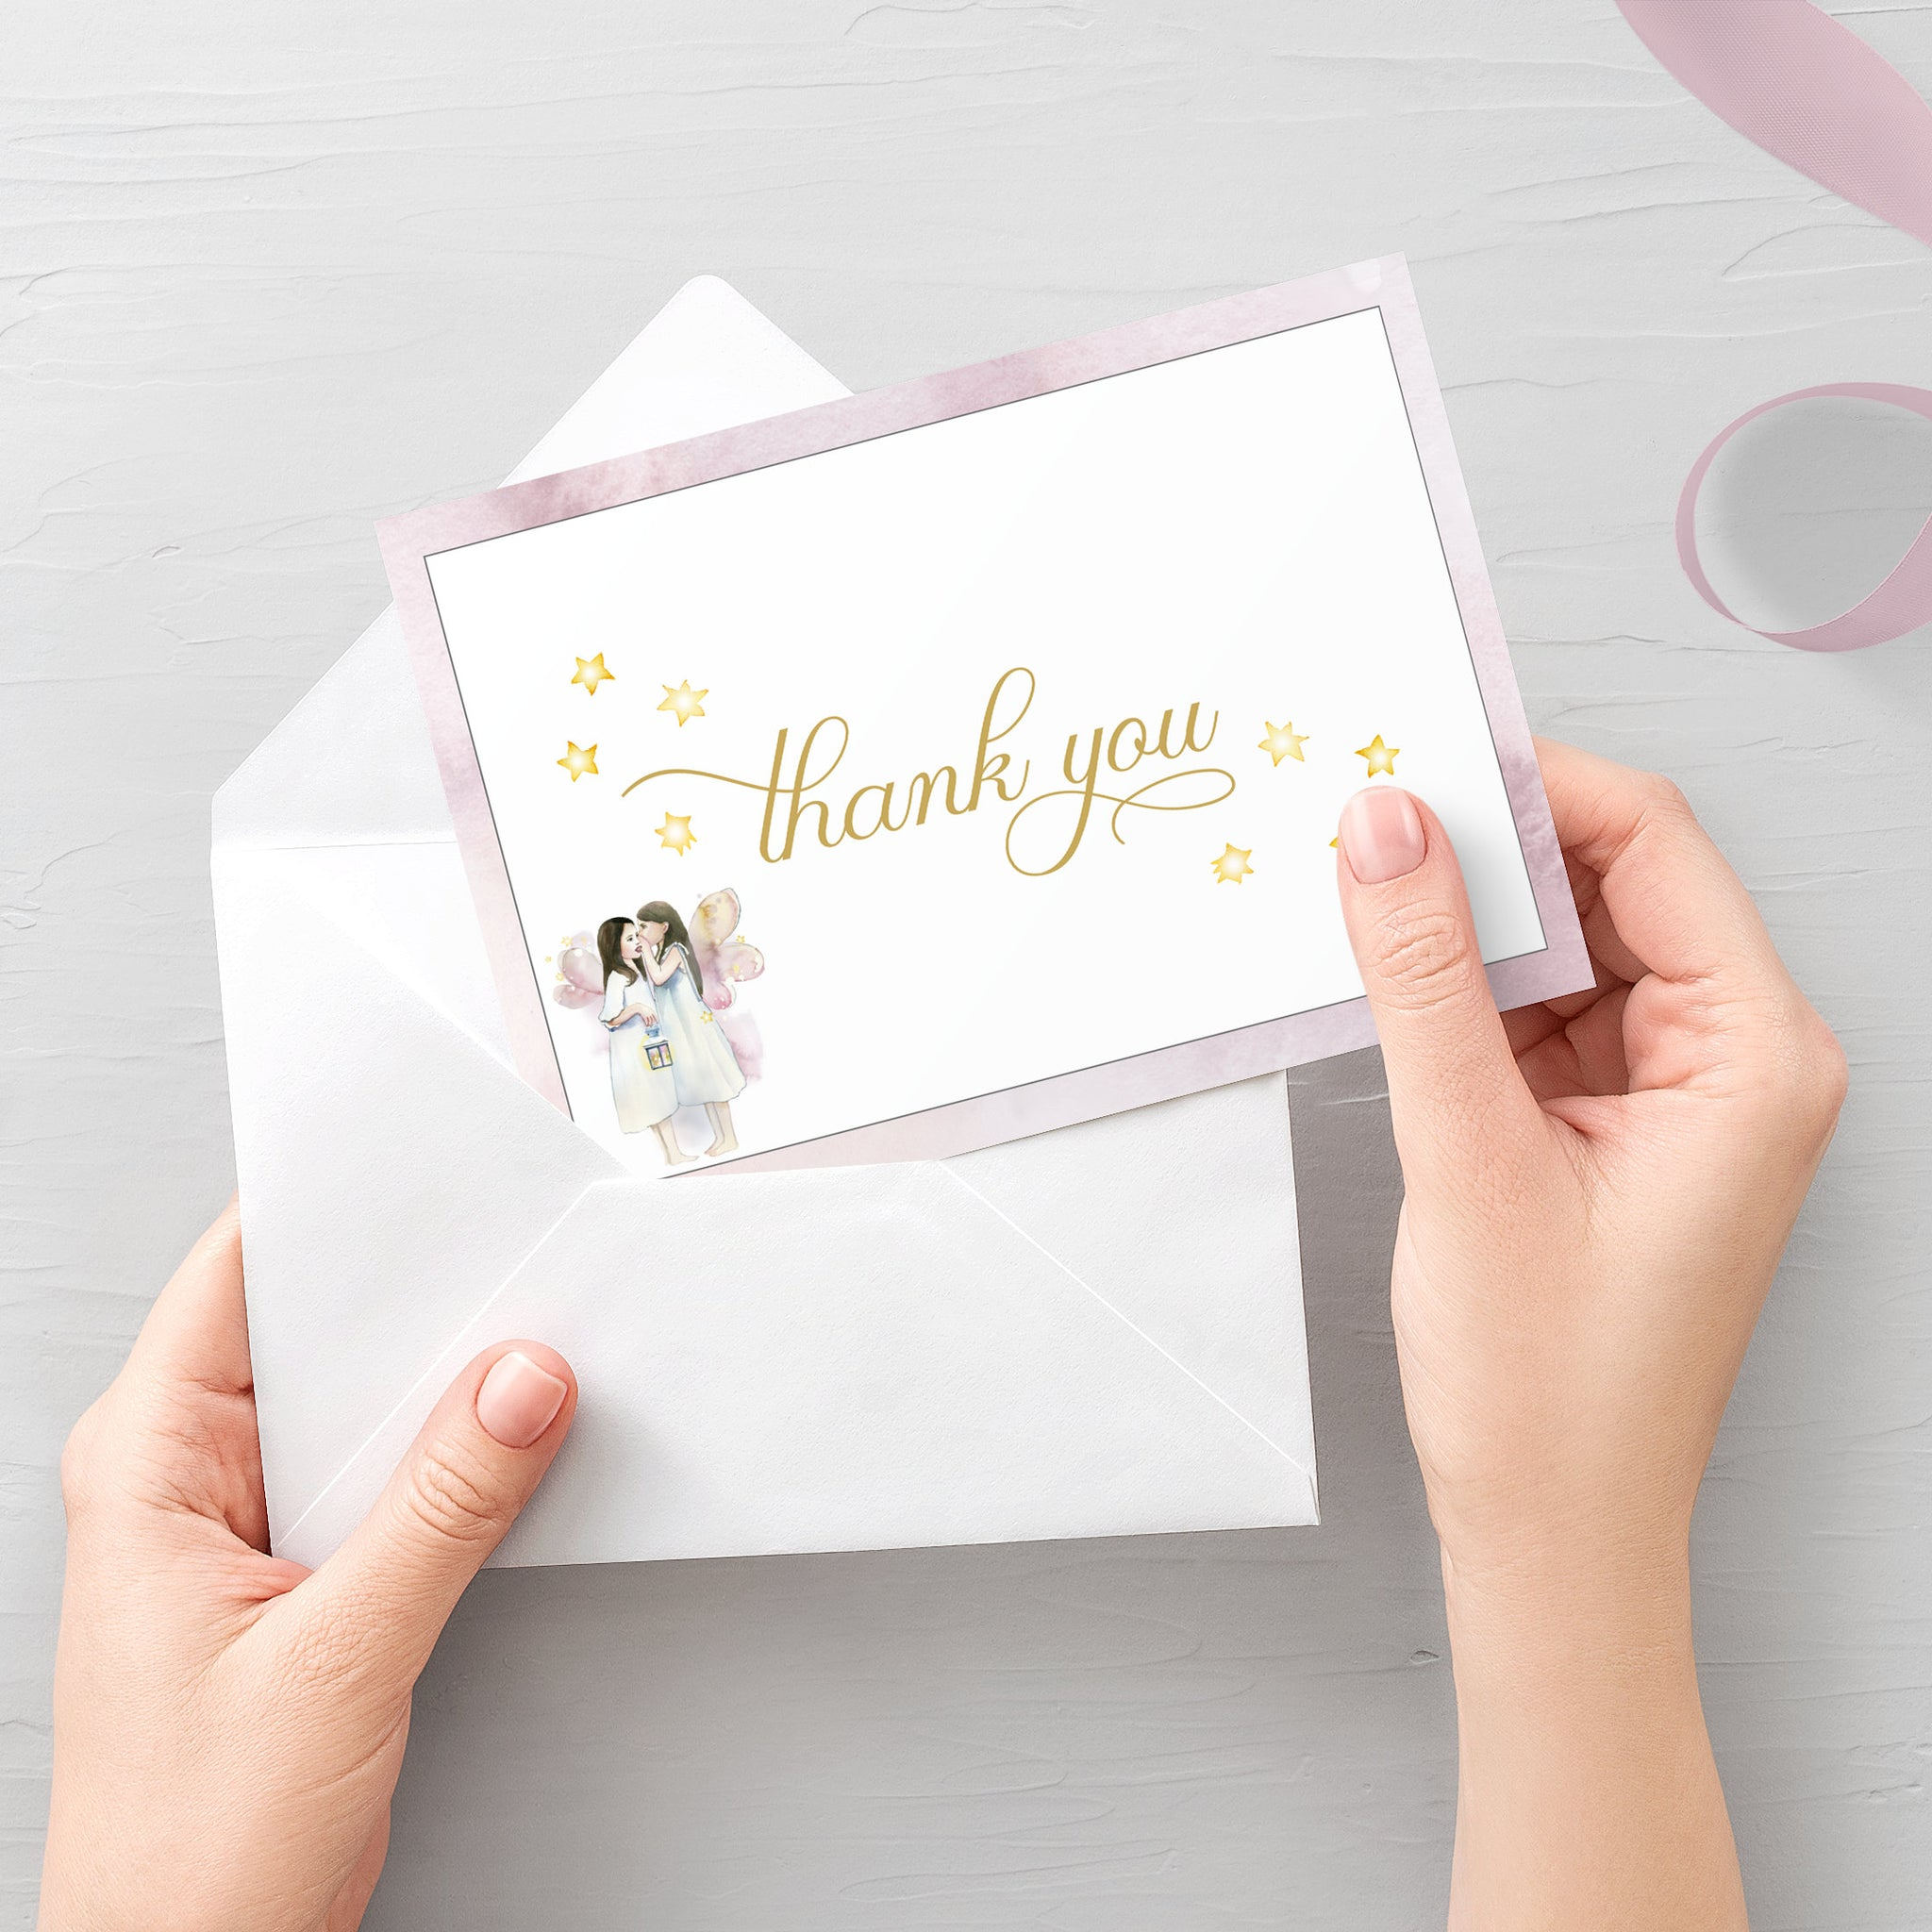 FairyThank You Card Printable, Fairy Thank You Note, Folded and Flat Cards 5X3.5, Editable Template DIGITAL DOWNLOAD - D300 - @PlumPolkaDot